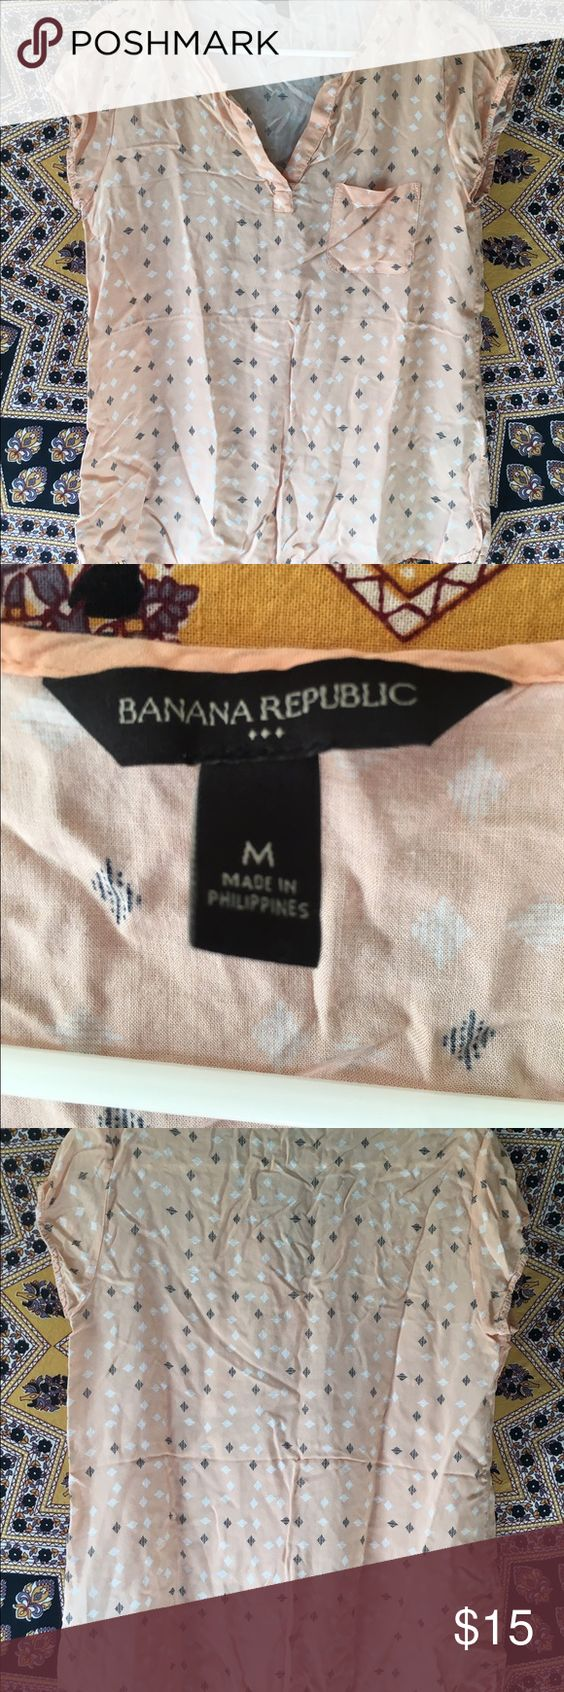 Banana Republic top Very light pink colored top with a pattern on it. It is very lightweight and super fun to wear in the springtime with a cardigan and jeans! Banana Republic Tops Tees - Short Sleeve